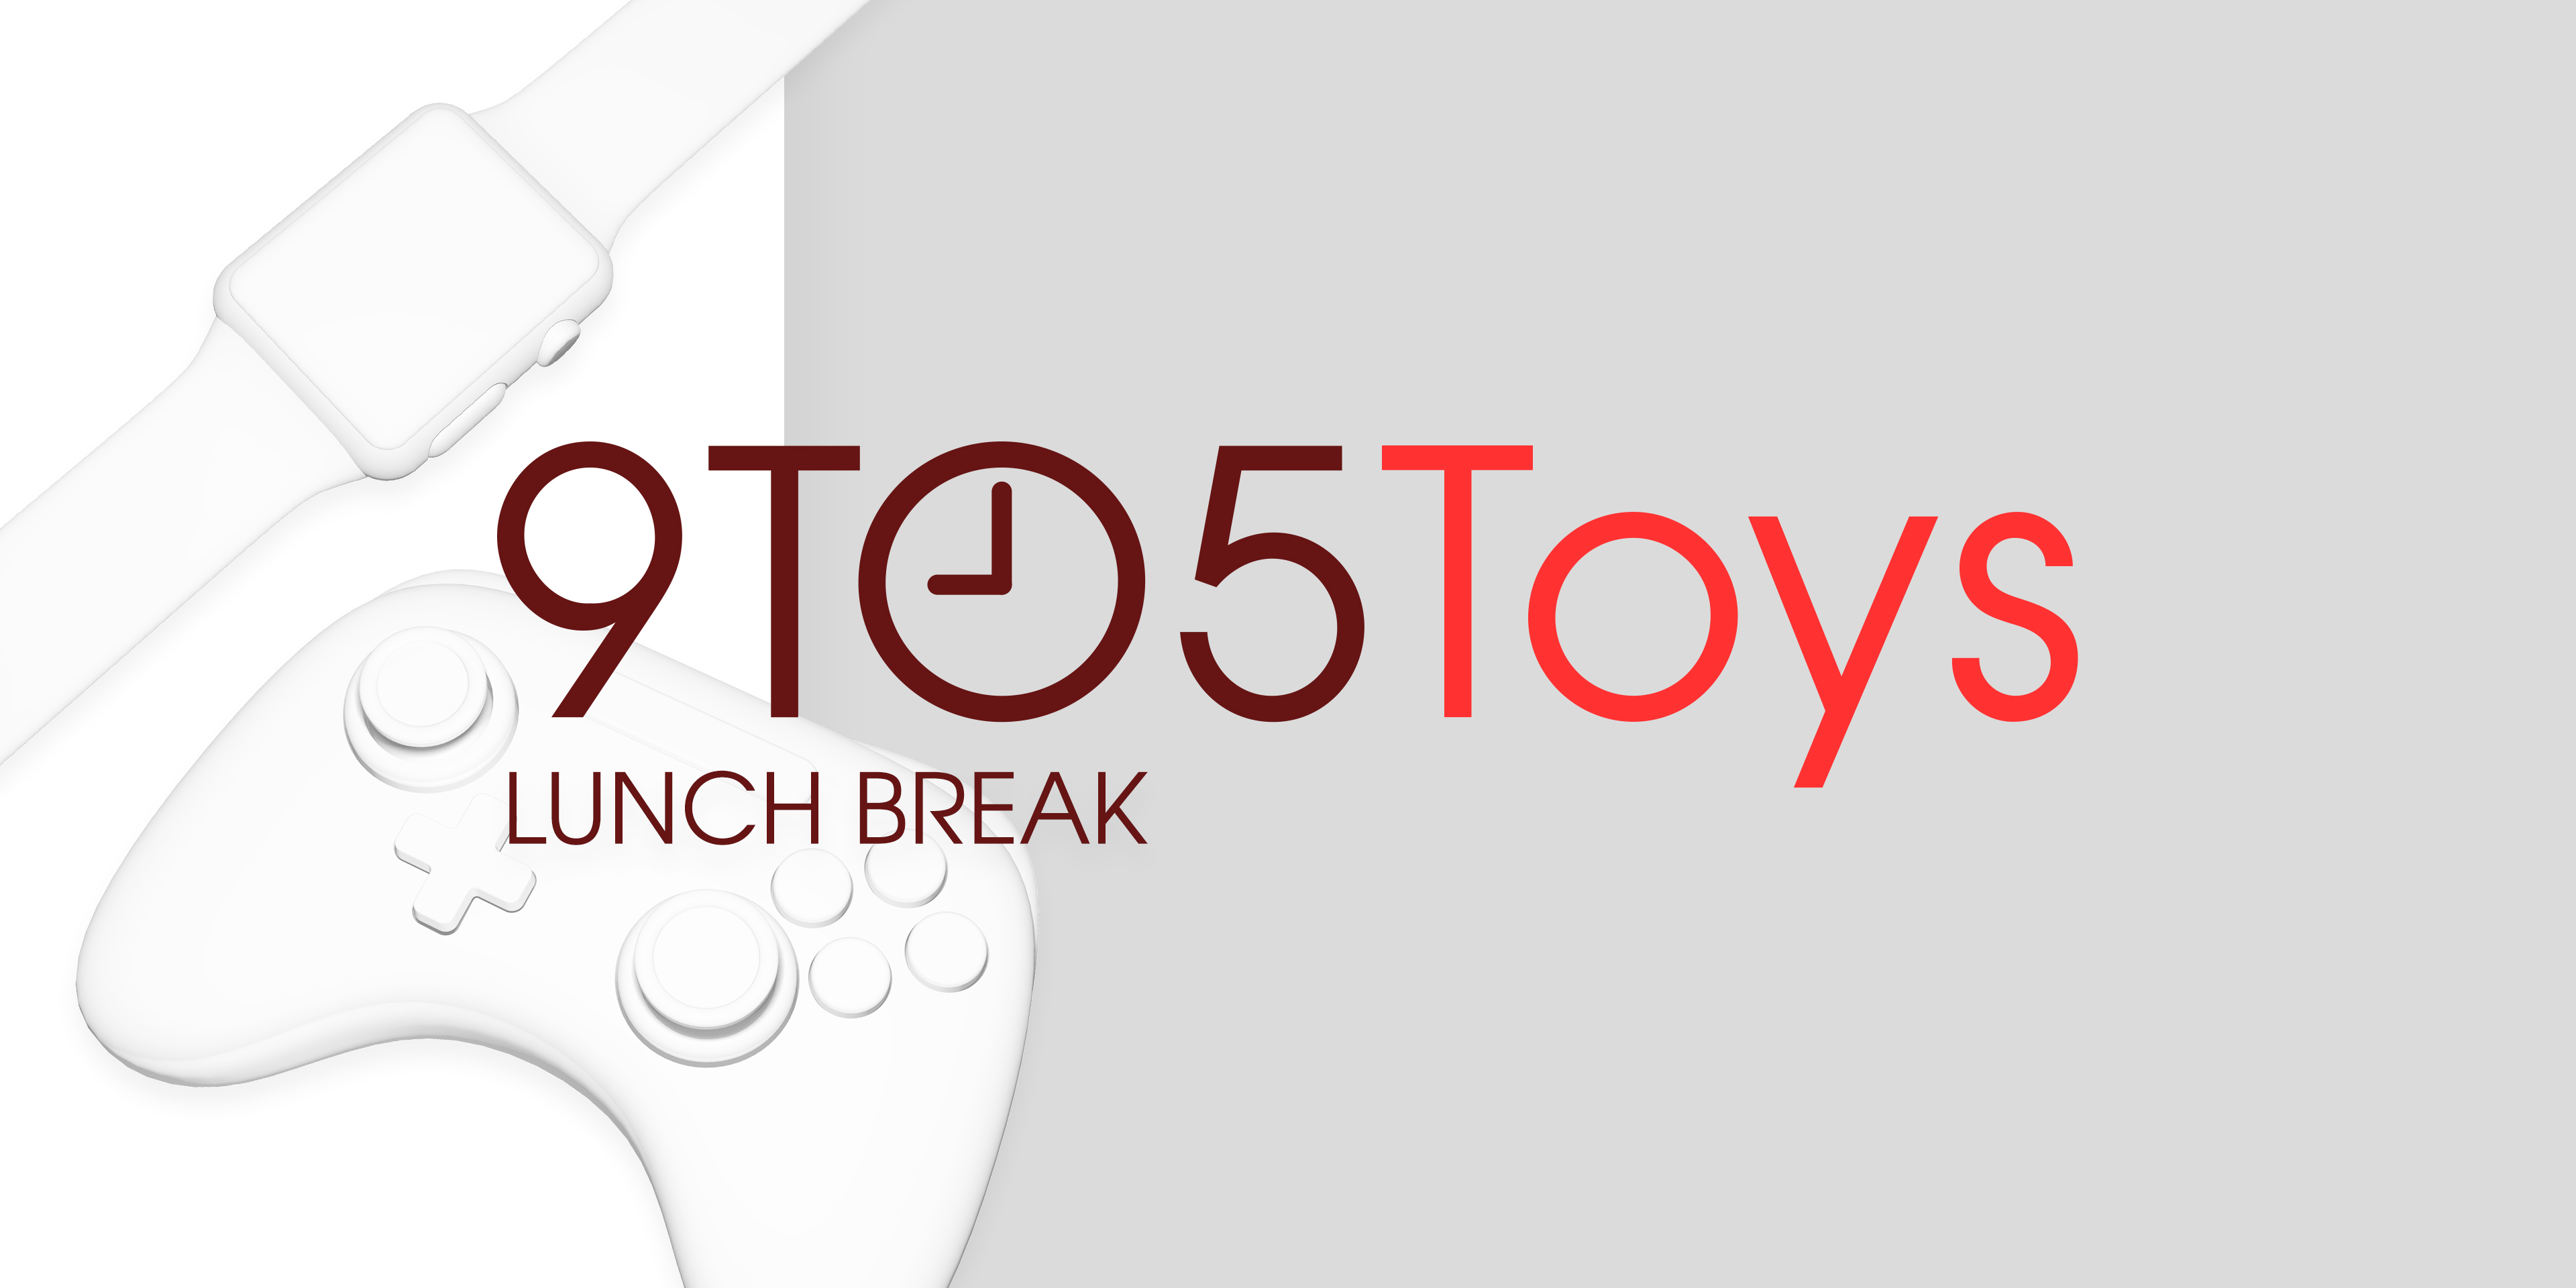 9to5toys lunch break 15 macbook pro 200 off pioneer carplay receiver 350 itunes movies from 1 more